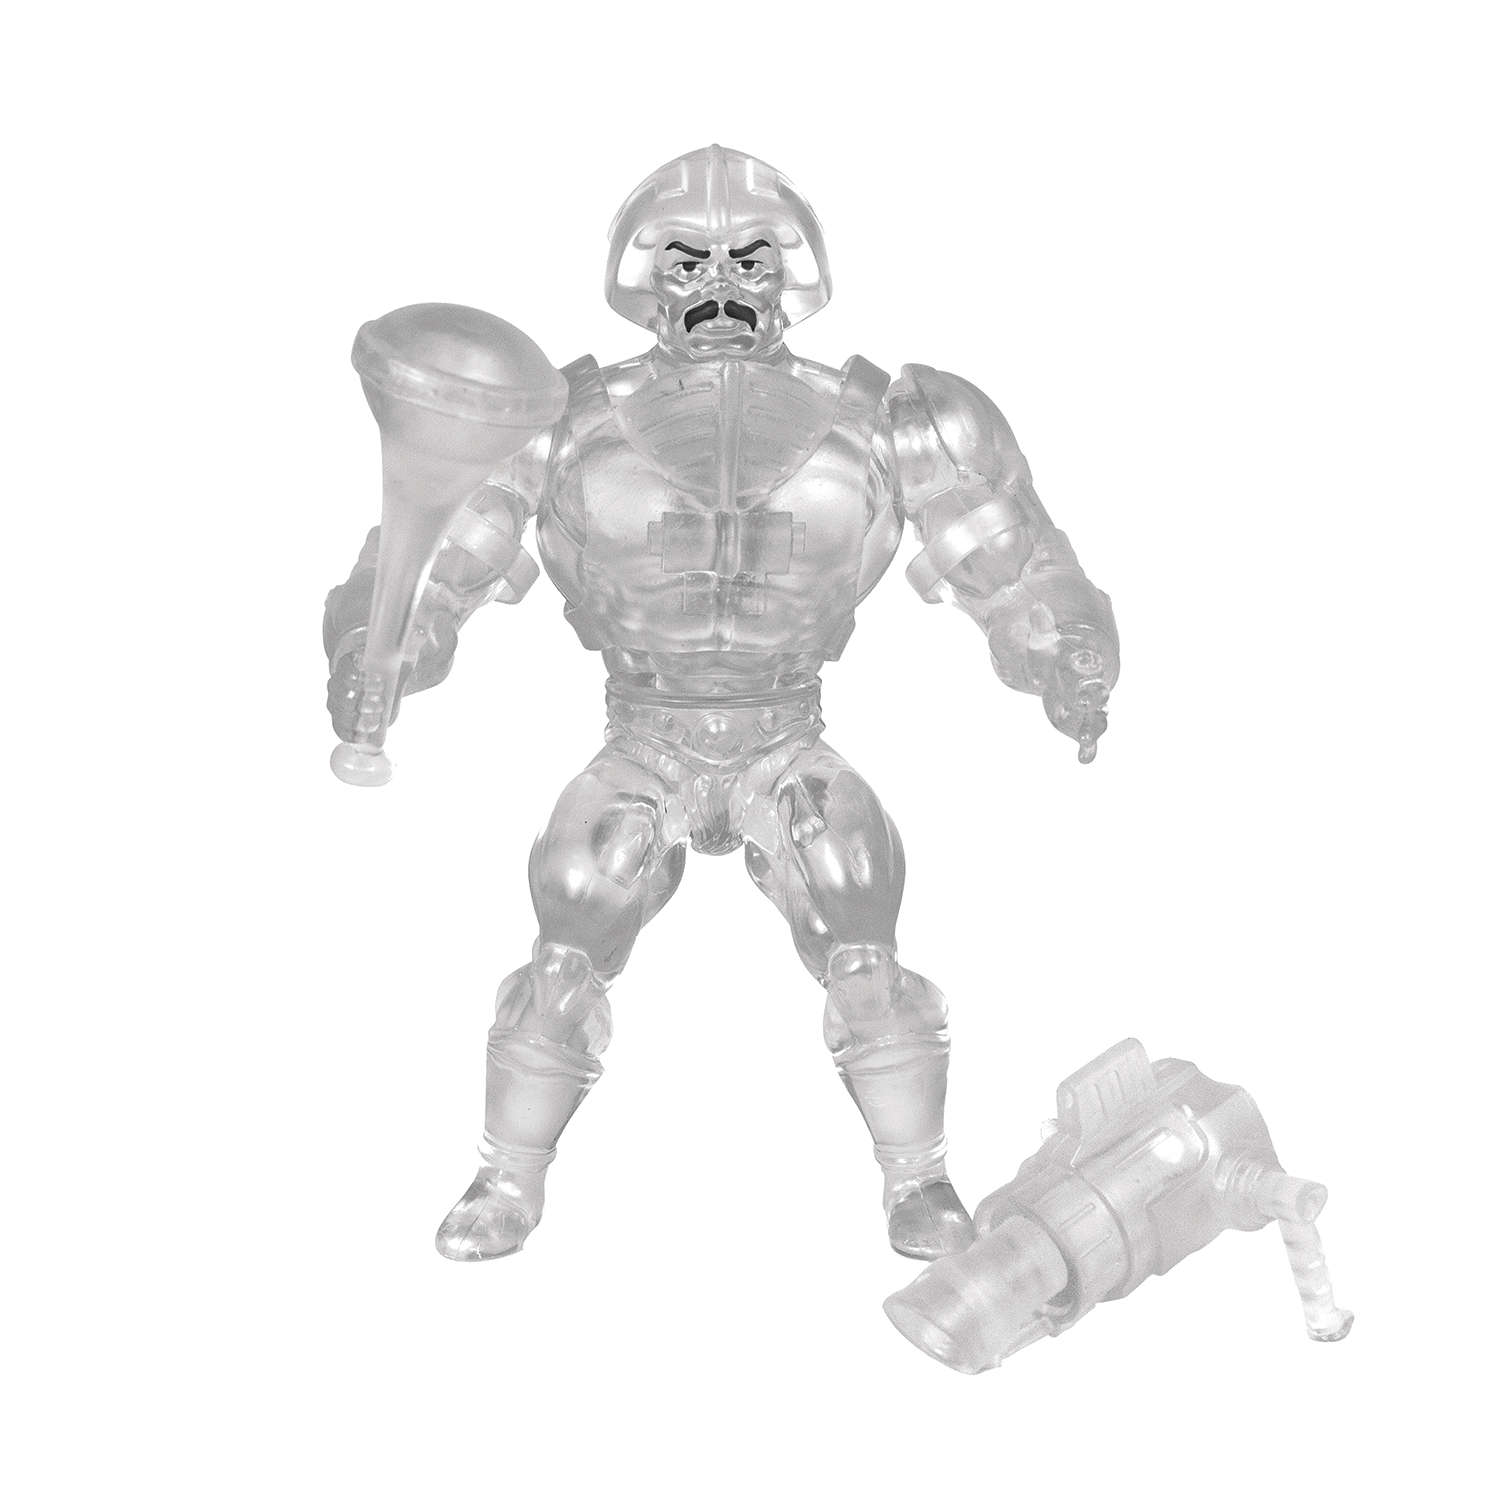 MOTU 5.5IN VINTAGE WAVE 3 CRYSTAL MAN-AT-ARMS ACTION FIGURE